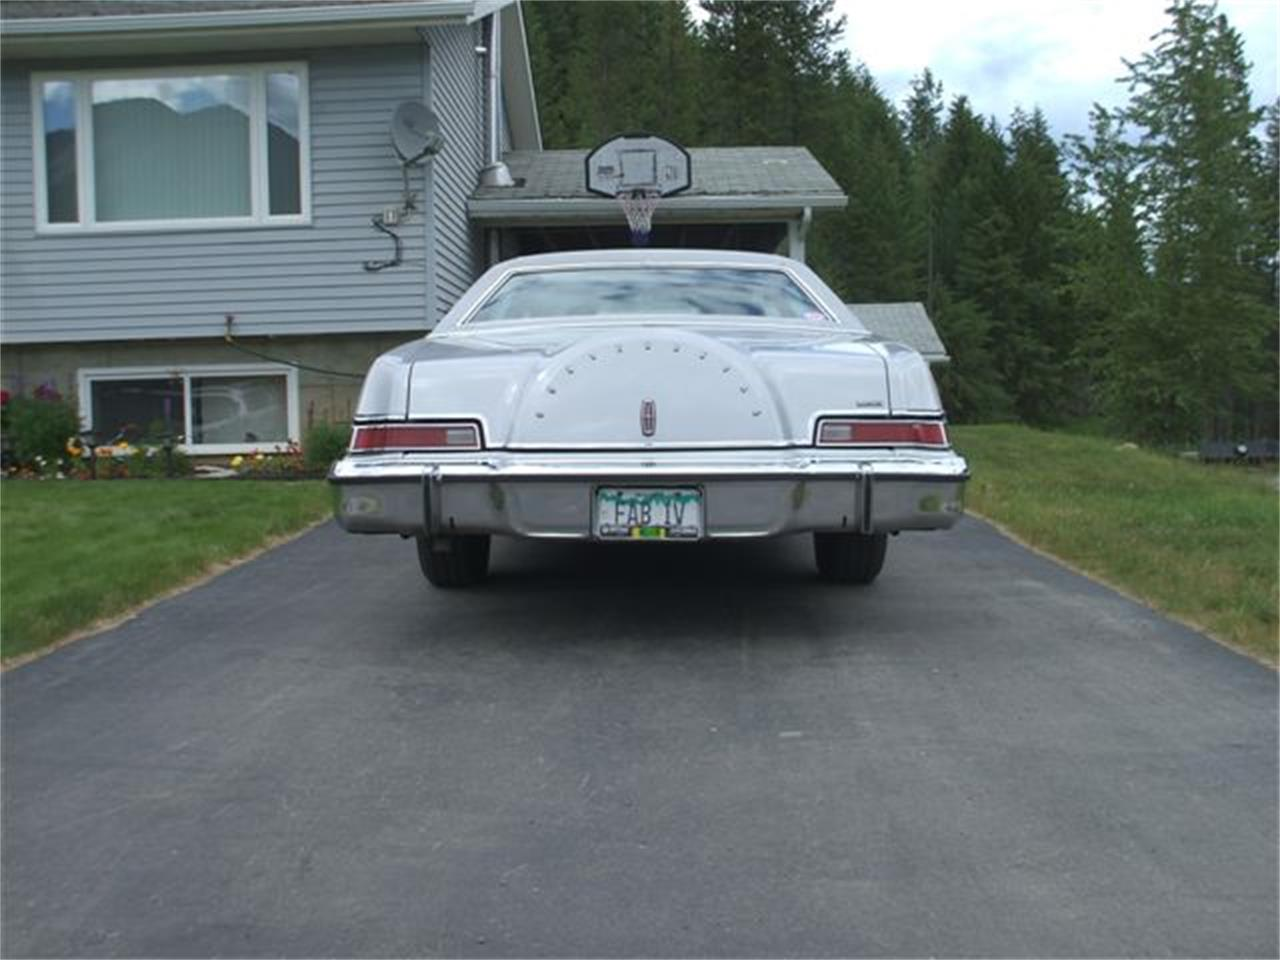 Large Picture of '74 Lincoln Continental Mark IV located in Elkford British Columbia - $7,600.00 Offered by a Private Seller - E23Q